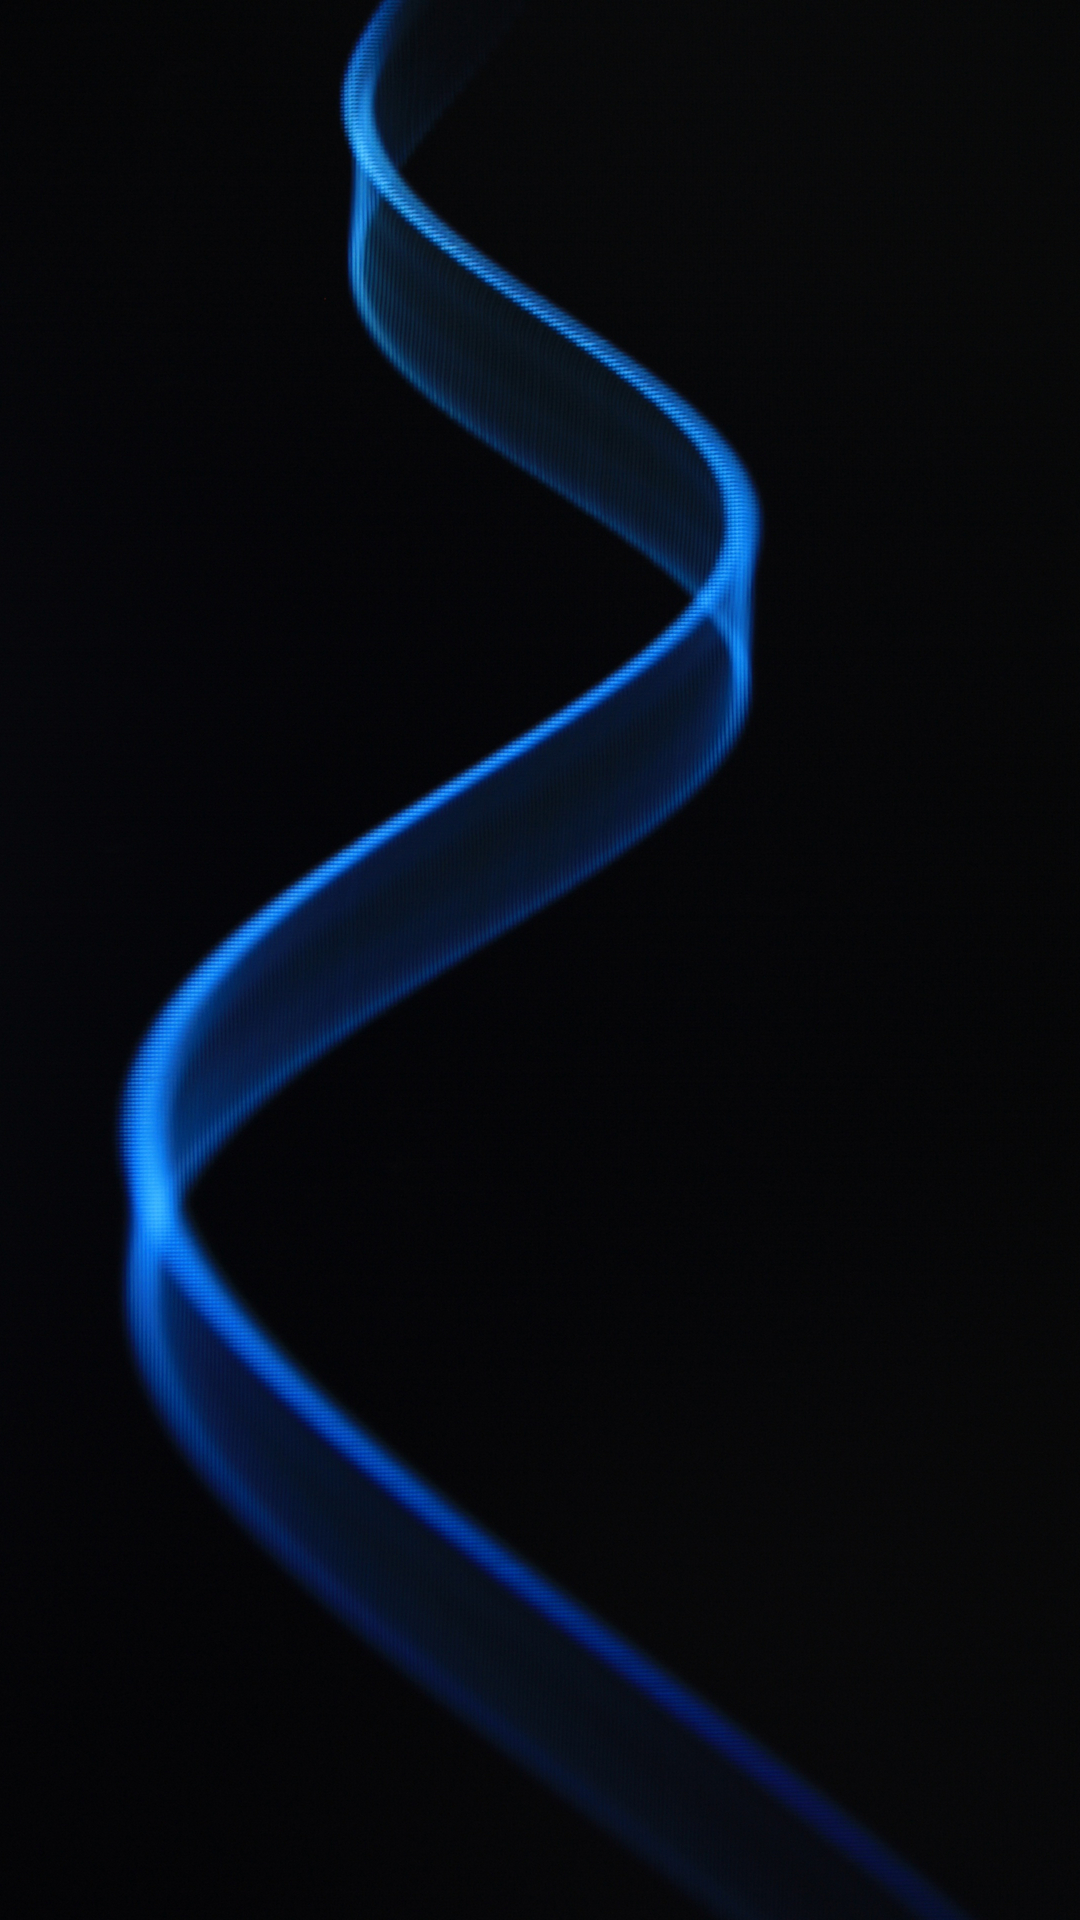 Background with blue design on black for galaxy s4 in 1080x1920 1080x1920